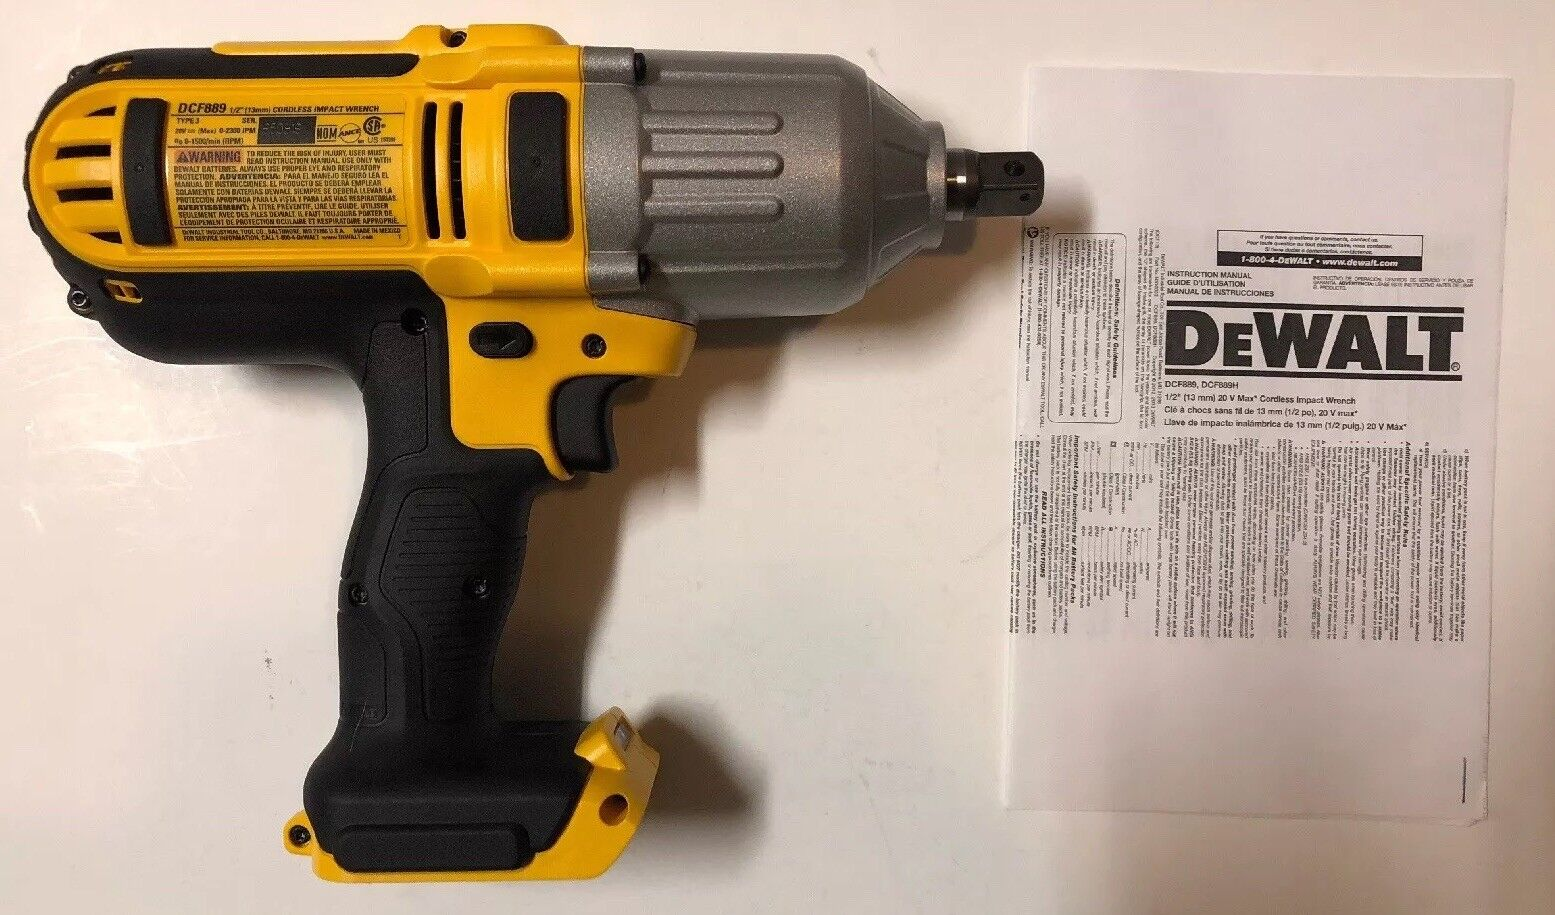 Dewalt DCF889BR 20V MAX Cordless Lithium-Ion 1/2 in. High-To